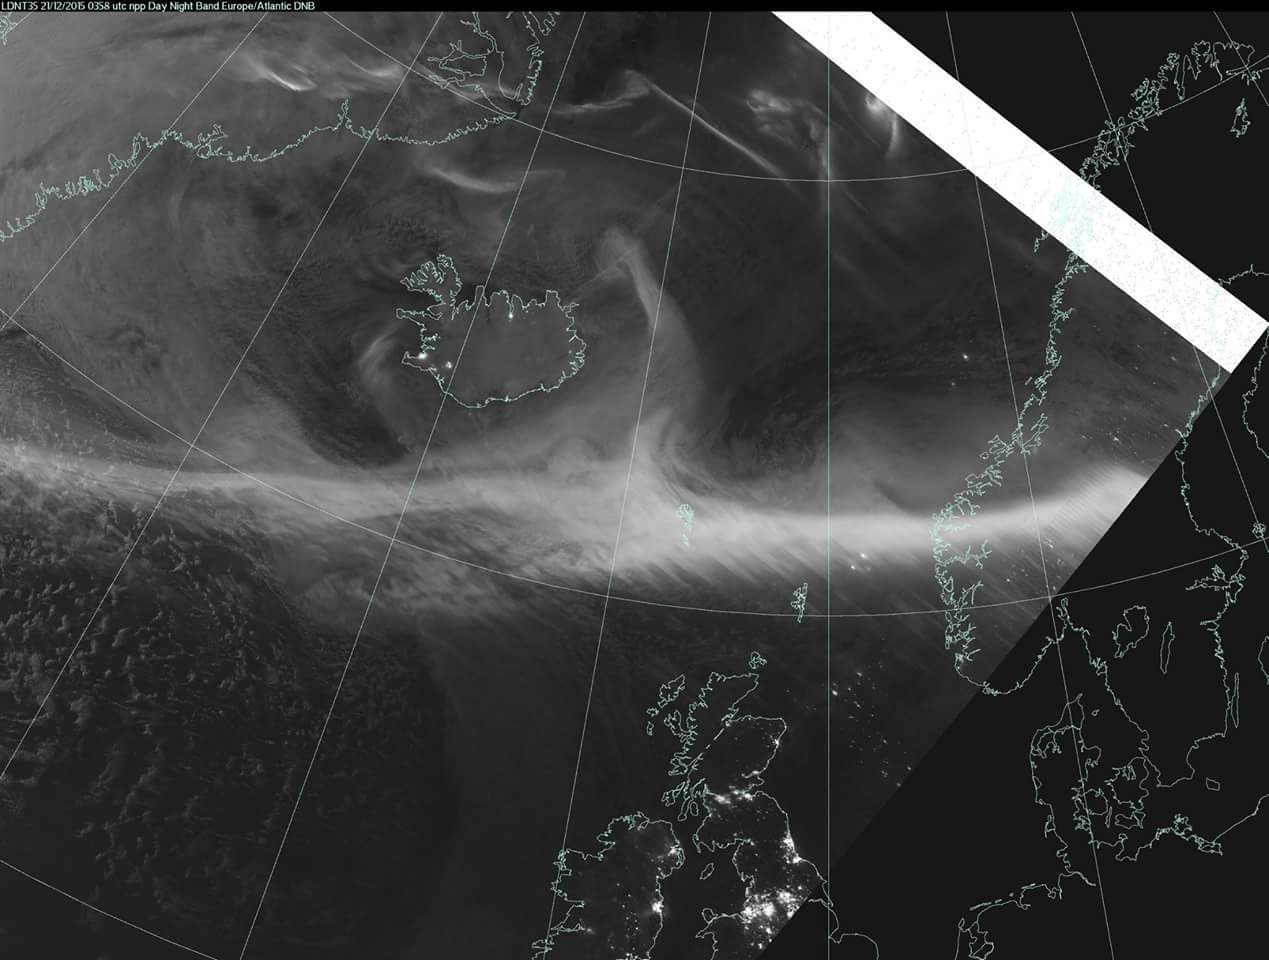 The dnb image from the aurora display - note how the auroral oval has moved south of Icelaand, much closer to the UK. That's one of the reasons for the elevated oval.